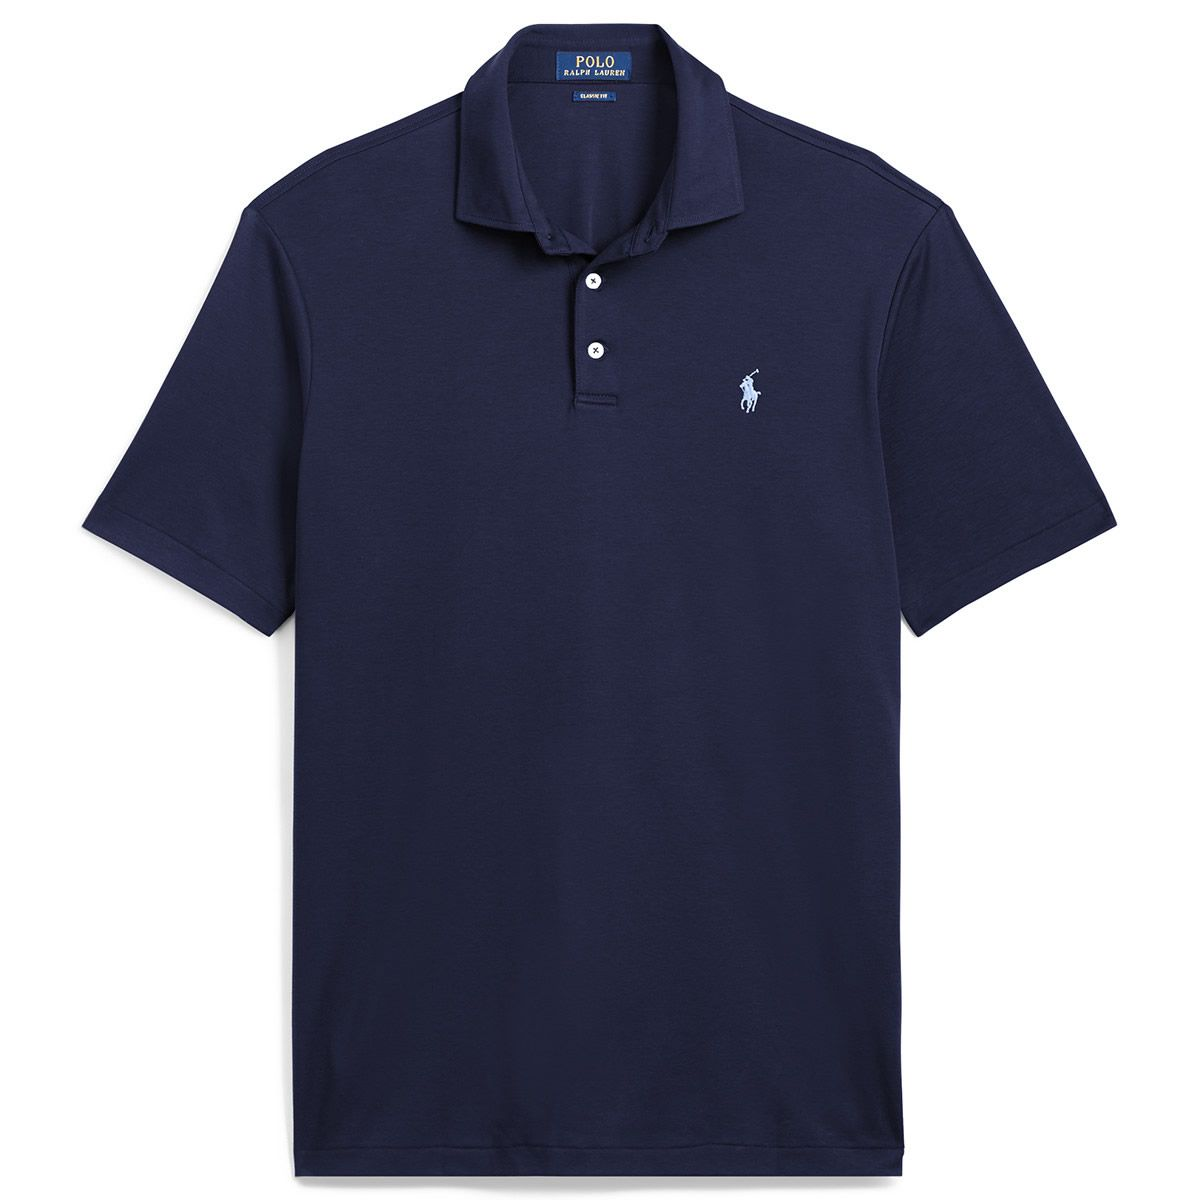 15fd160b Polo Ralph Lauren Mens Polo Shirts - Macy's